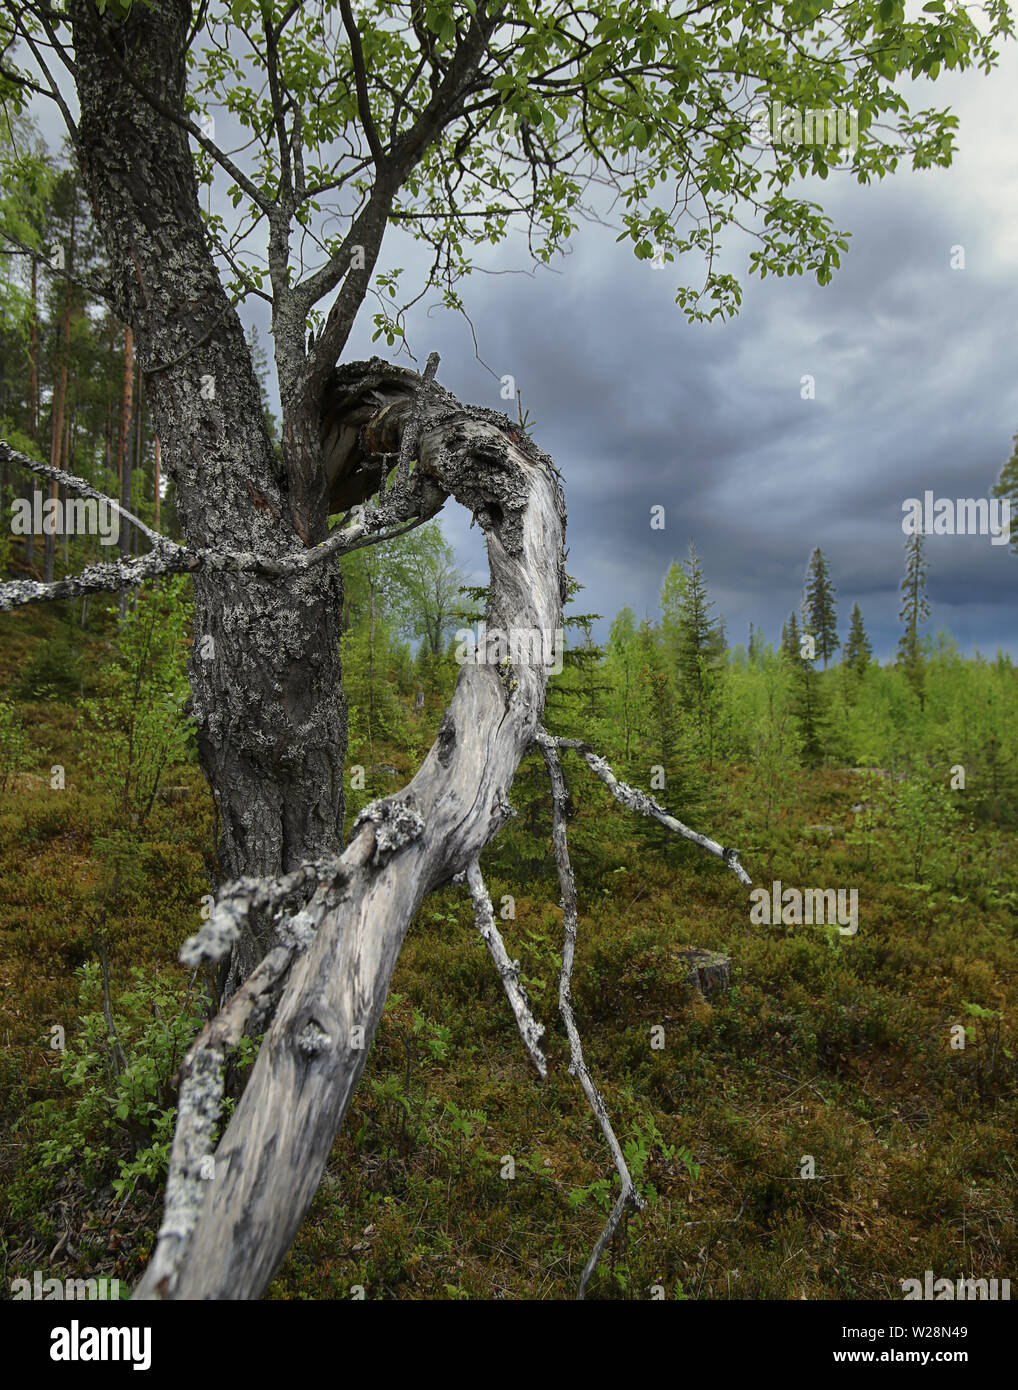 Gnarled willow and dark clouds in Brannberget Naturreservat in Northern Sweden. - Stock Image